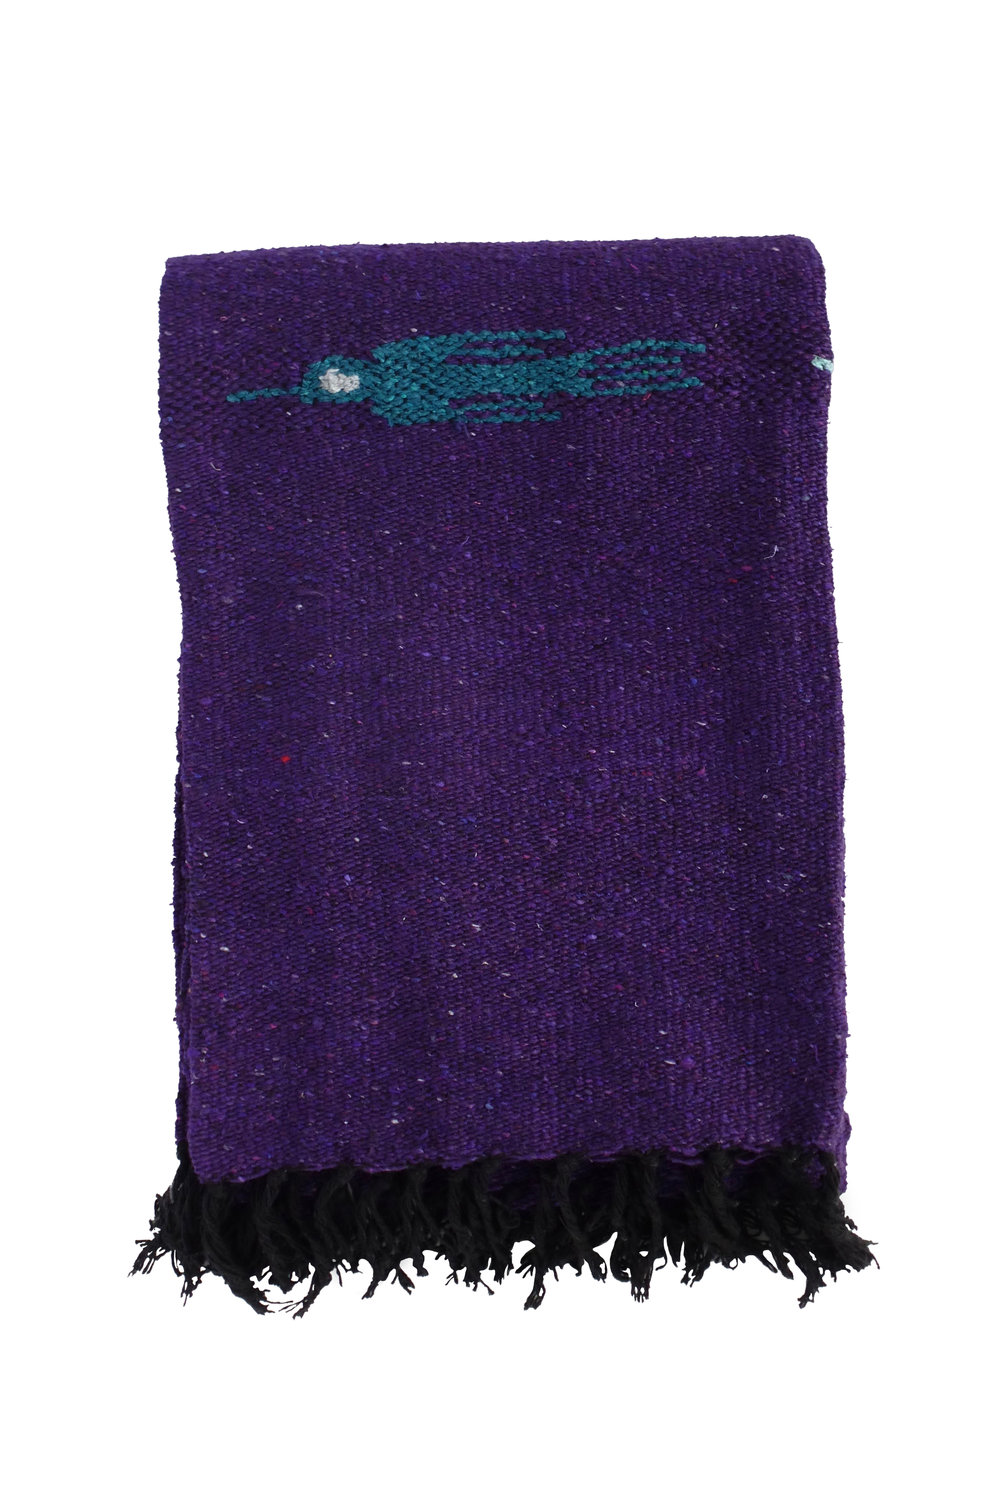 THUNDERBIRD BLANKET - PURPLE